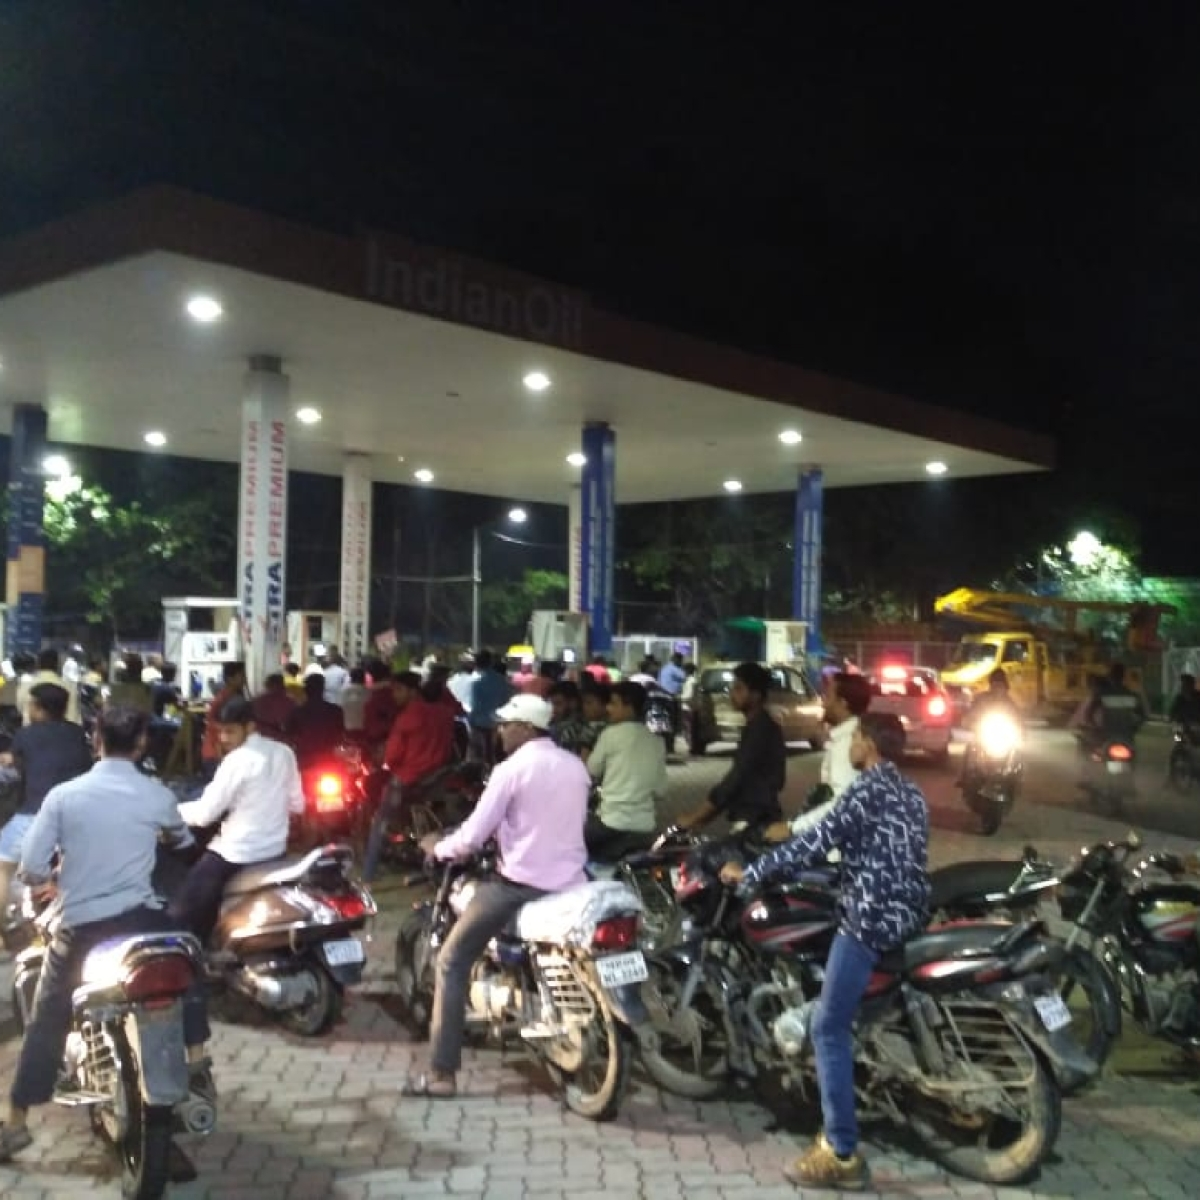 Truckers' strike: Panic in city as fuel pumps go dry